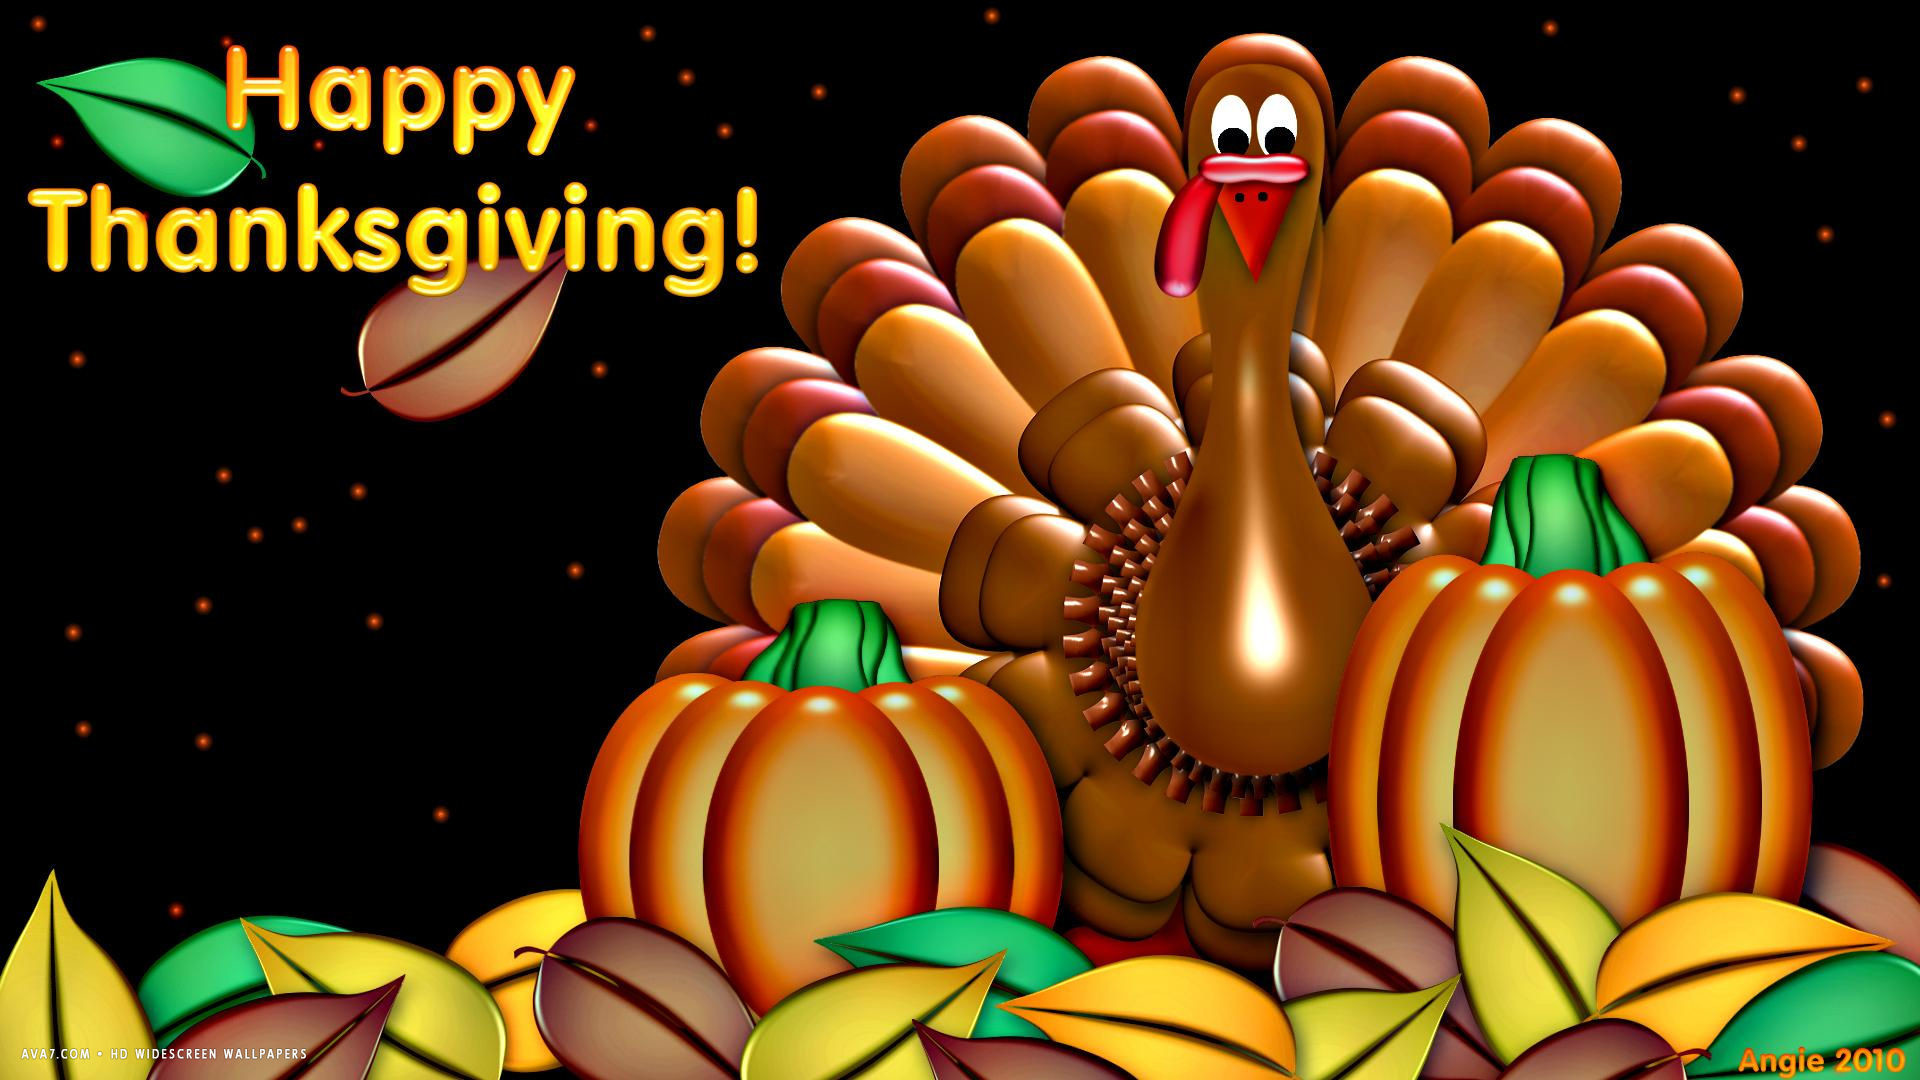 1920x1080 happy thanksgiving turkey pumpkin artistic holiday hd widescreen wallpaper